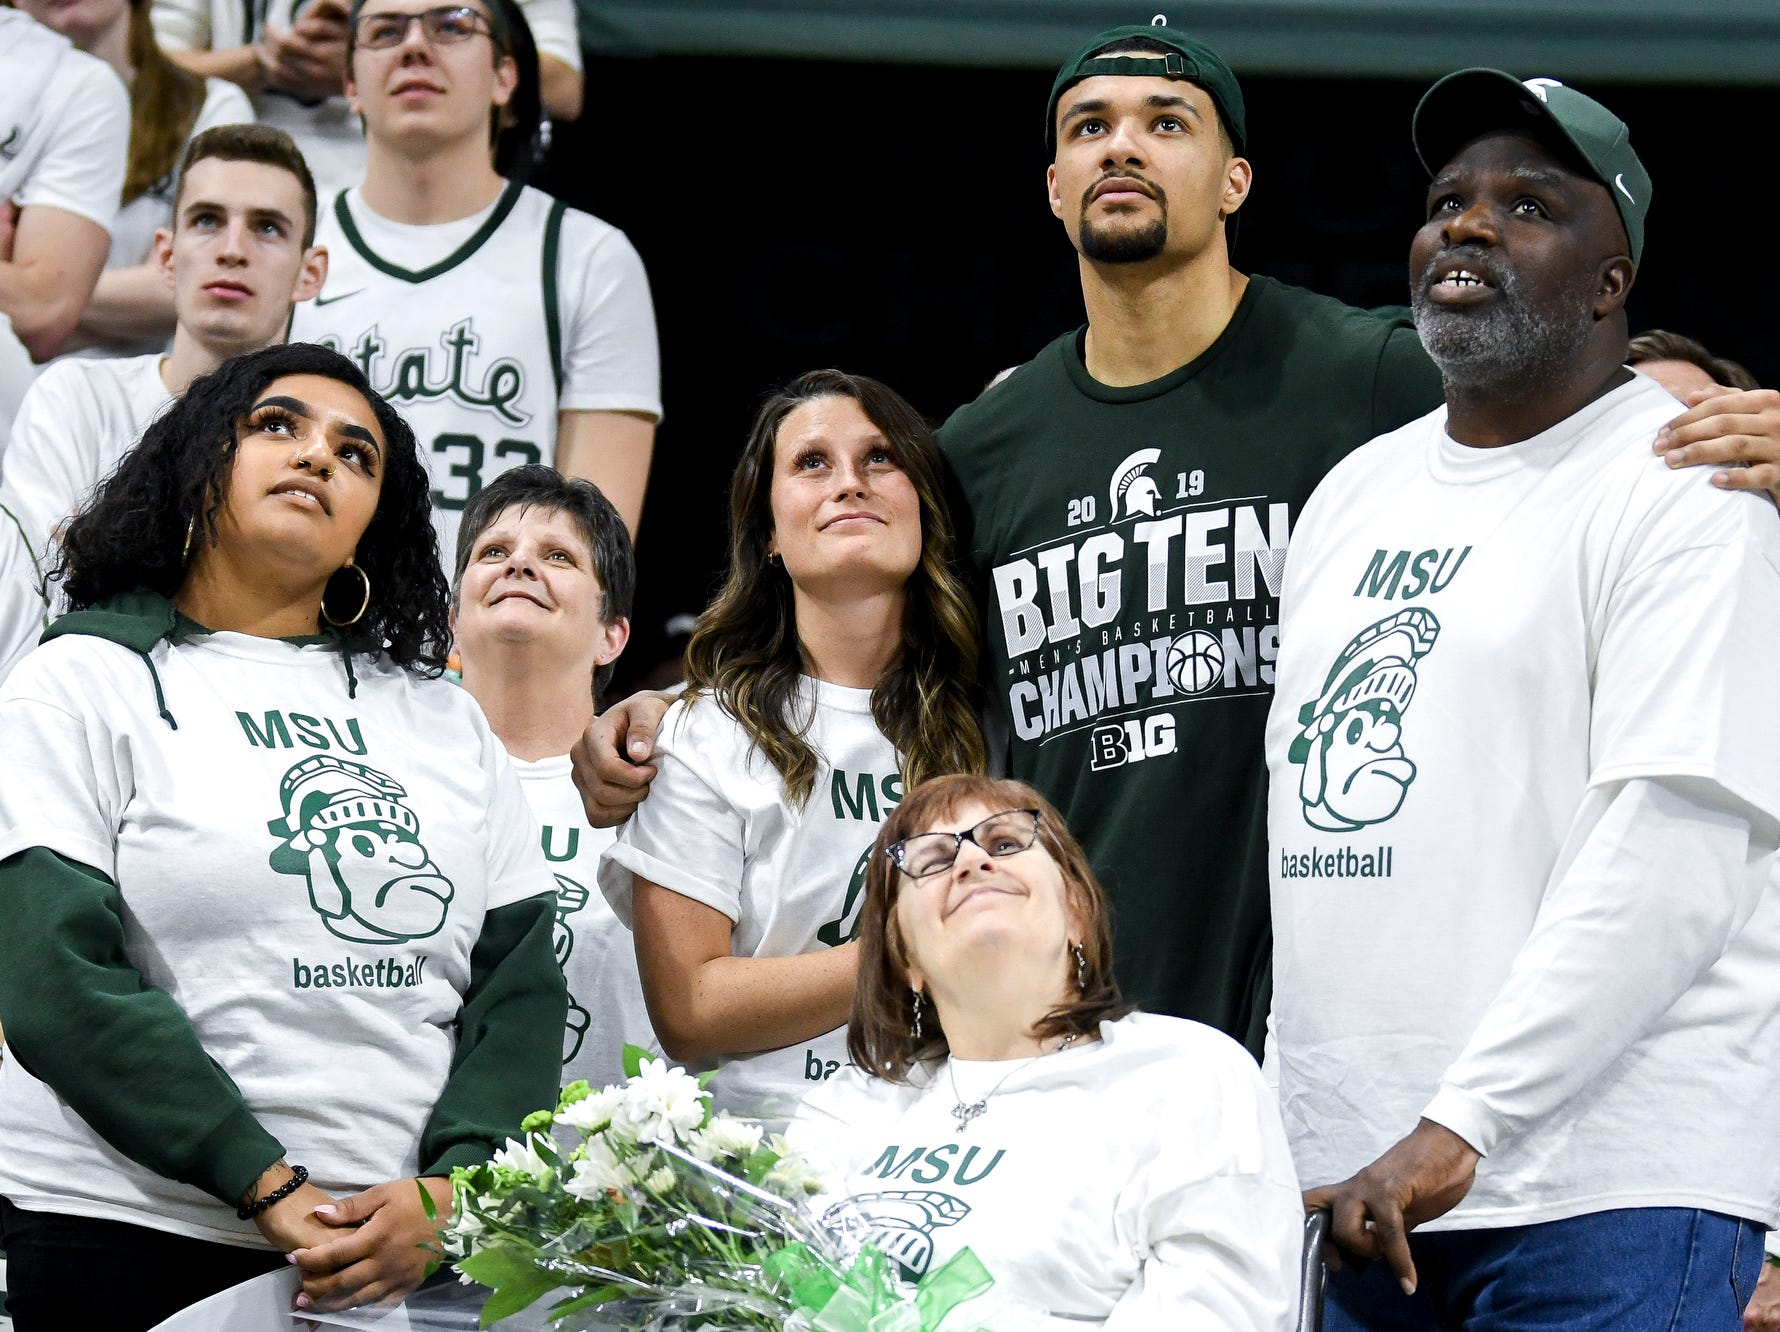 Michigan State senior Kenny Goins, center, watches a video tribute with his family during senior night after the Spartans beat Michigan 75-63 on Saturday, March 9, 2019, at the Breslin Center in East Lansing.